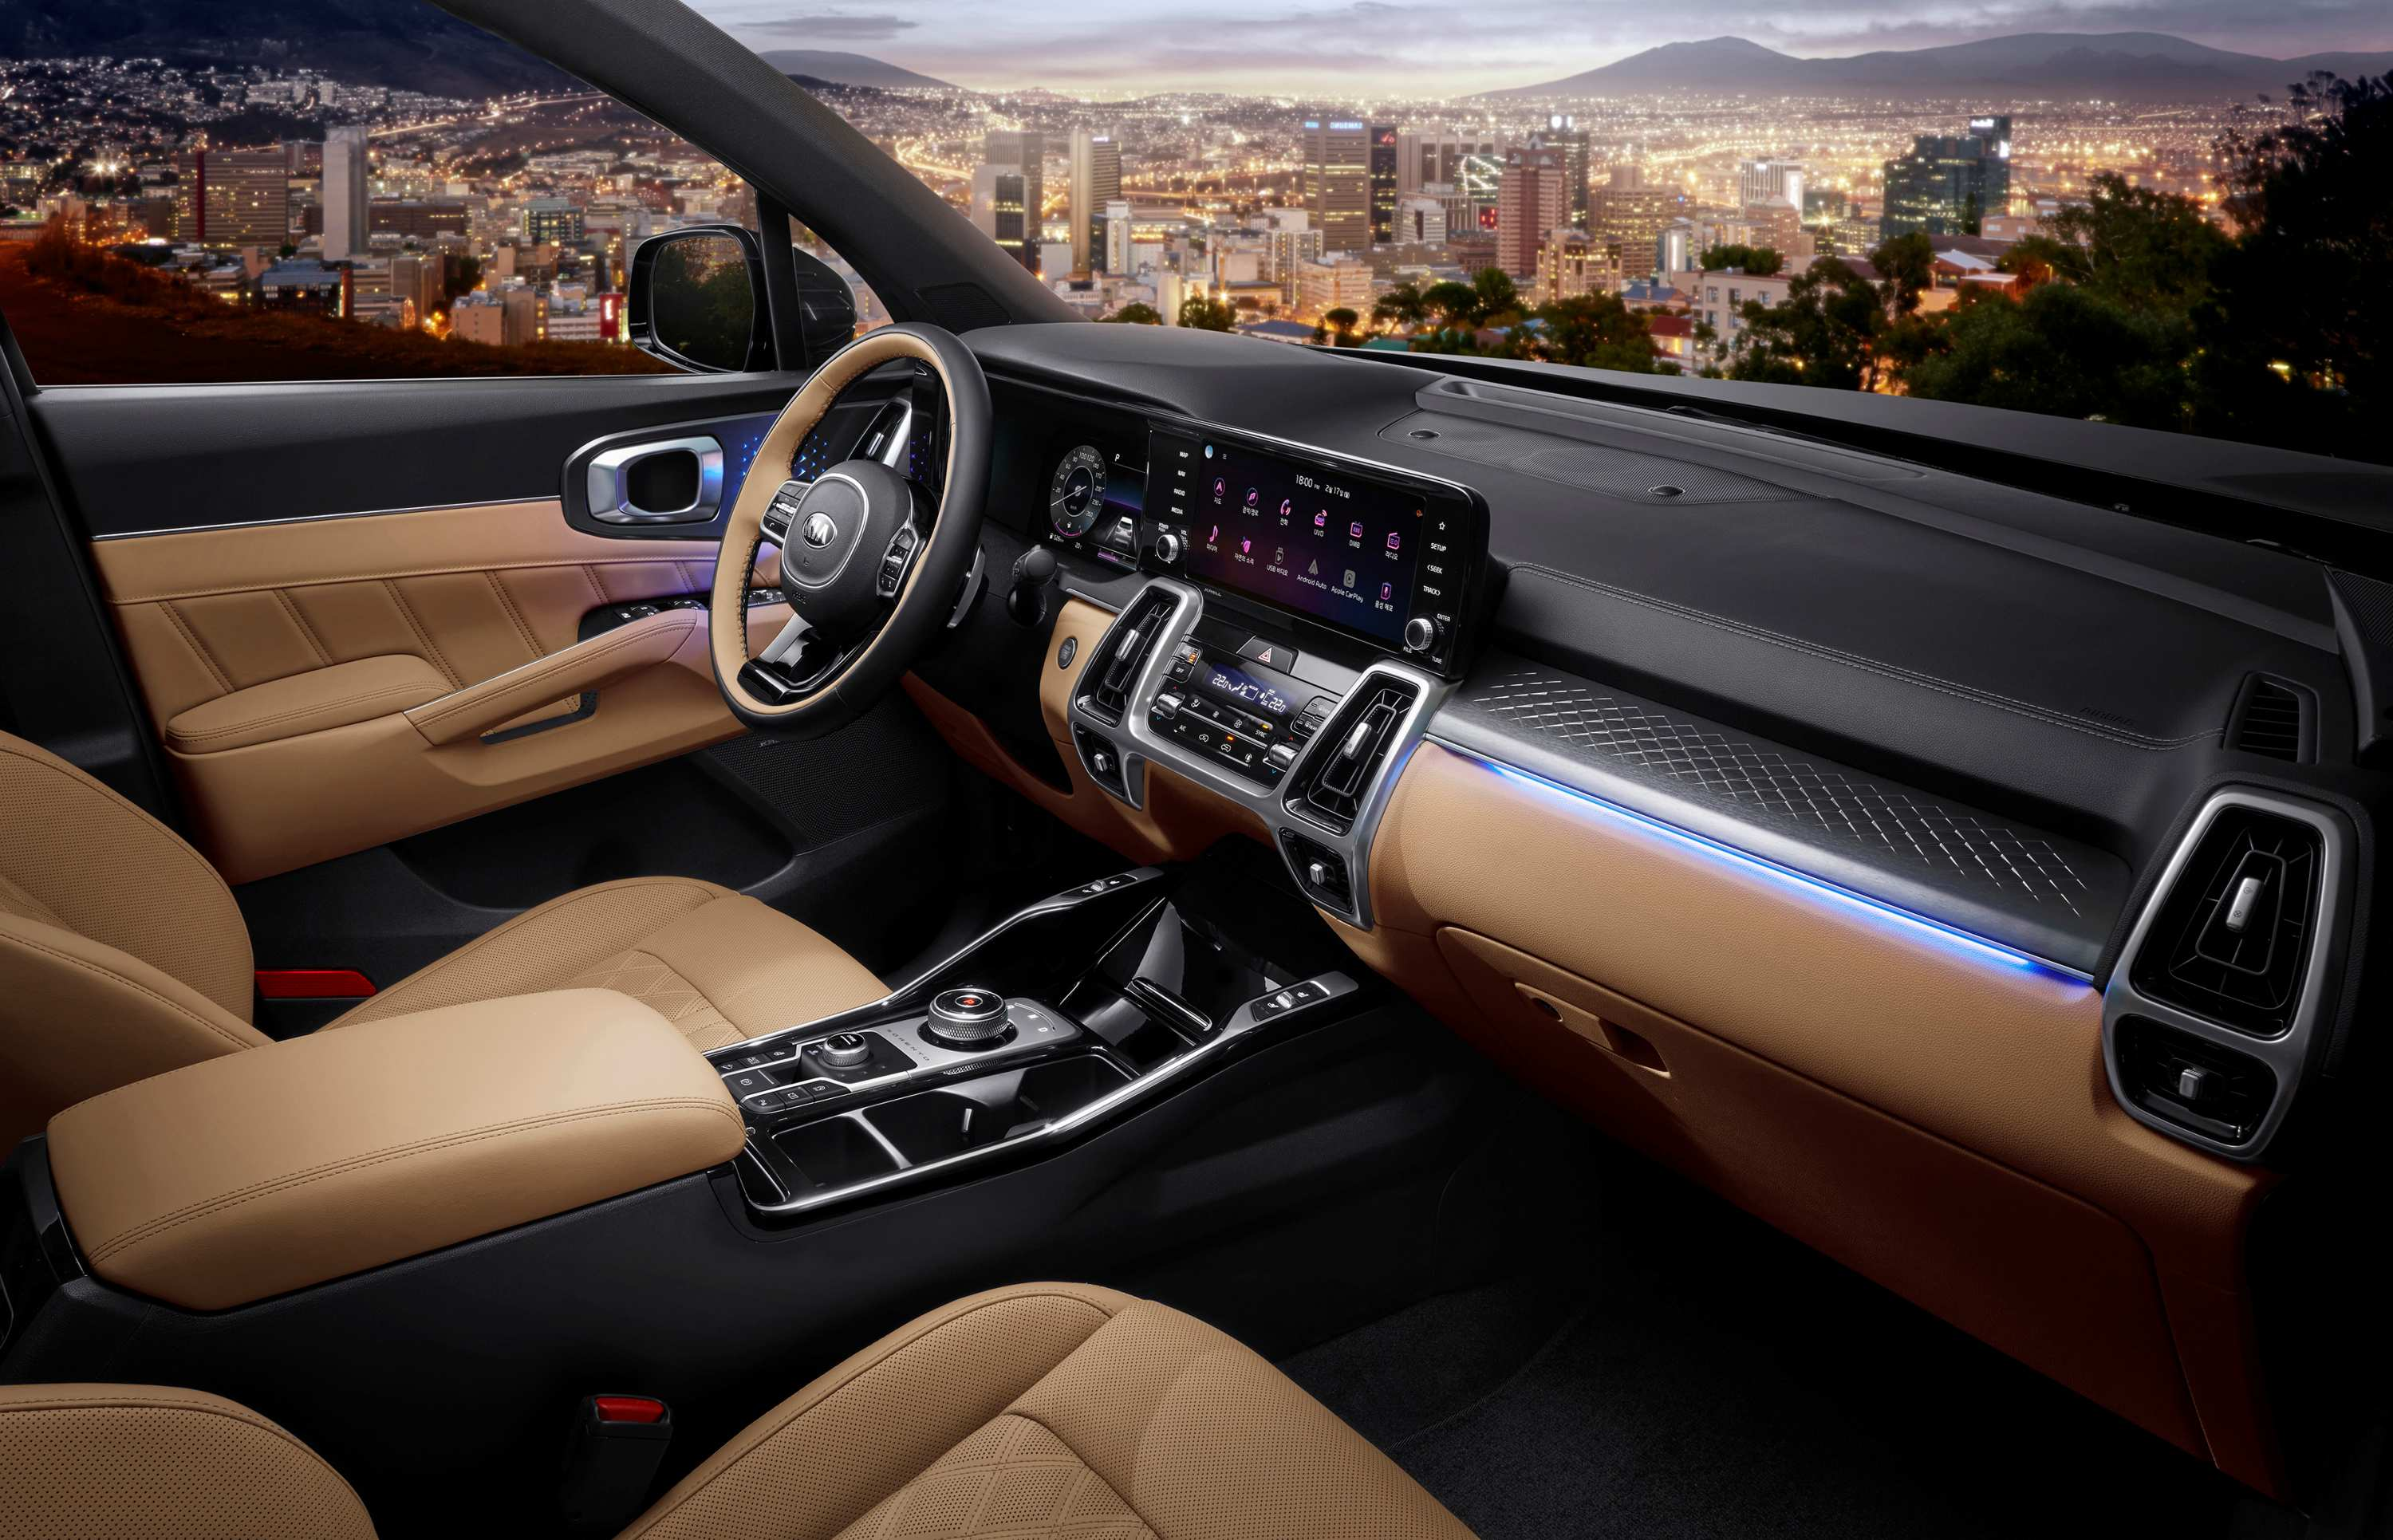 2020 New Kia Sorento interior